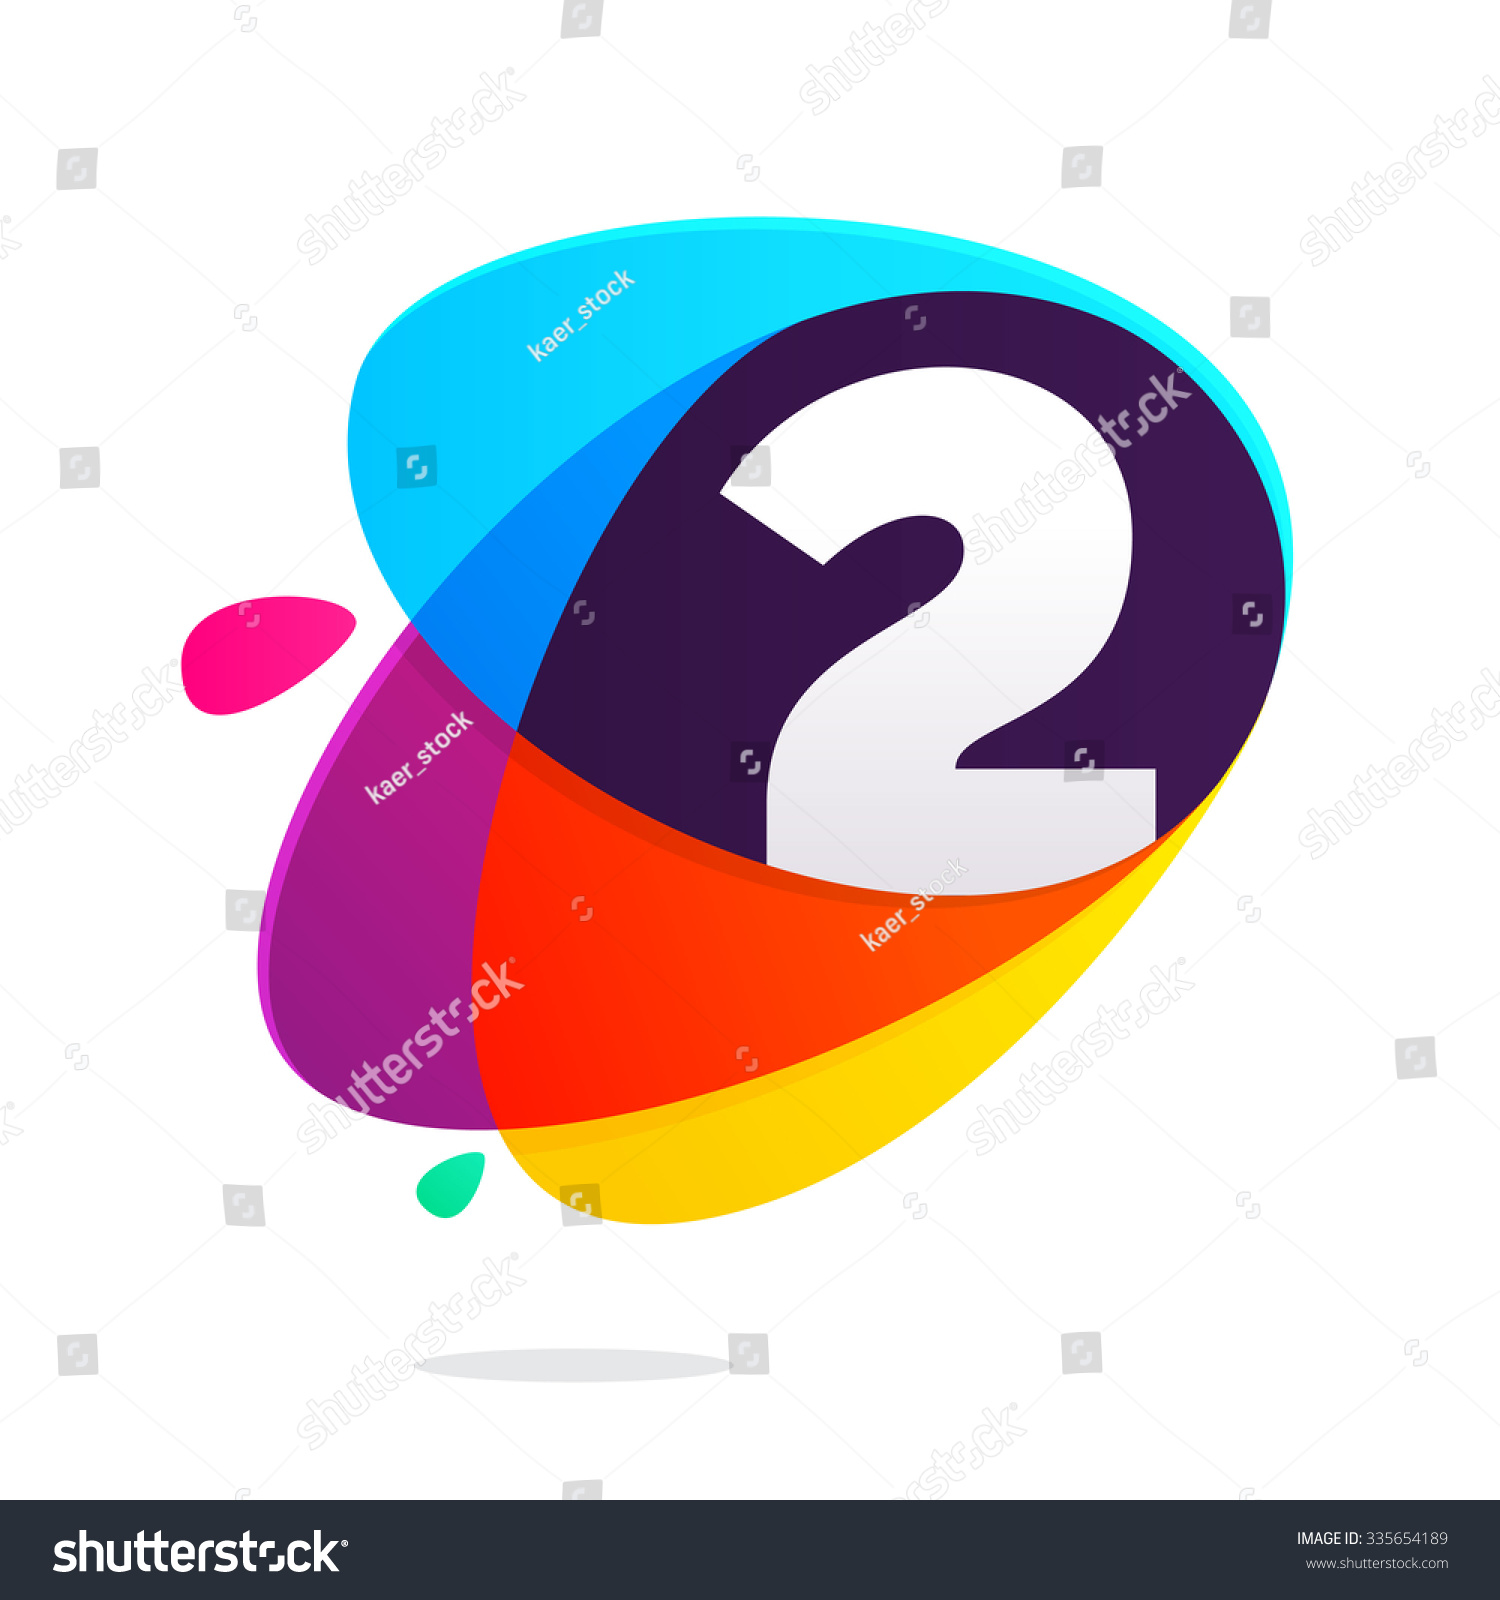 Number two ellipses intersection vector design stock vector number two with ellipses intersection vector design template elements for your application or corporate identity buycottarizona Images